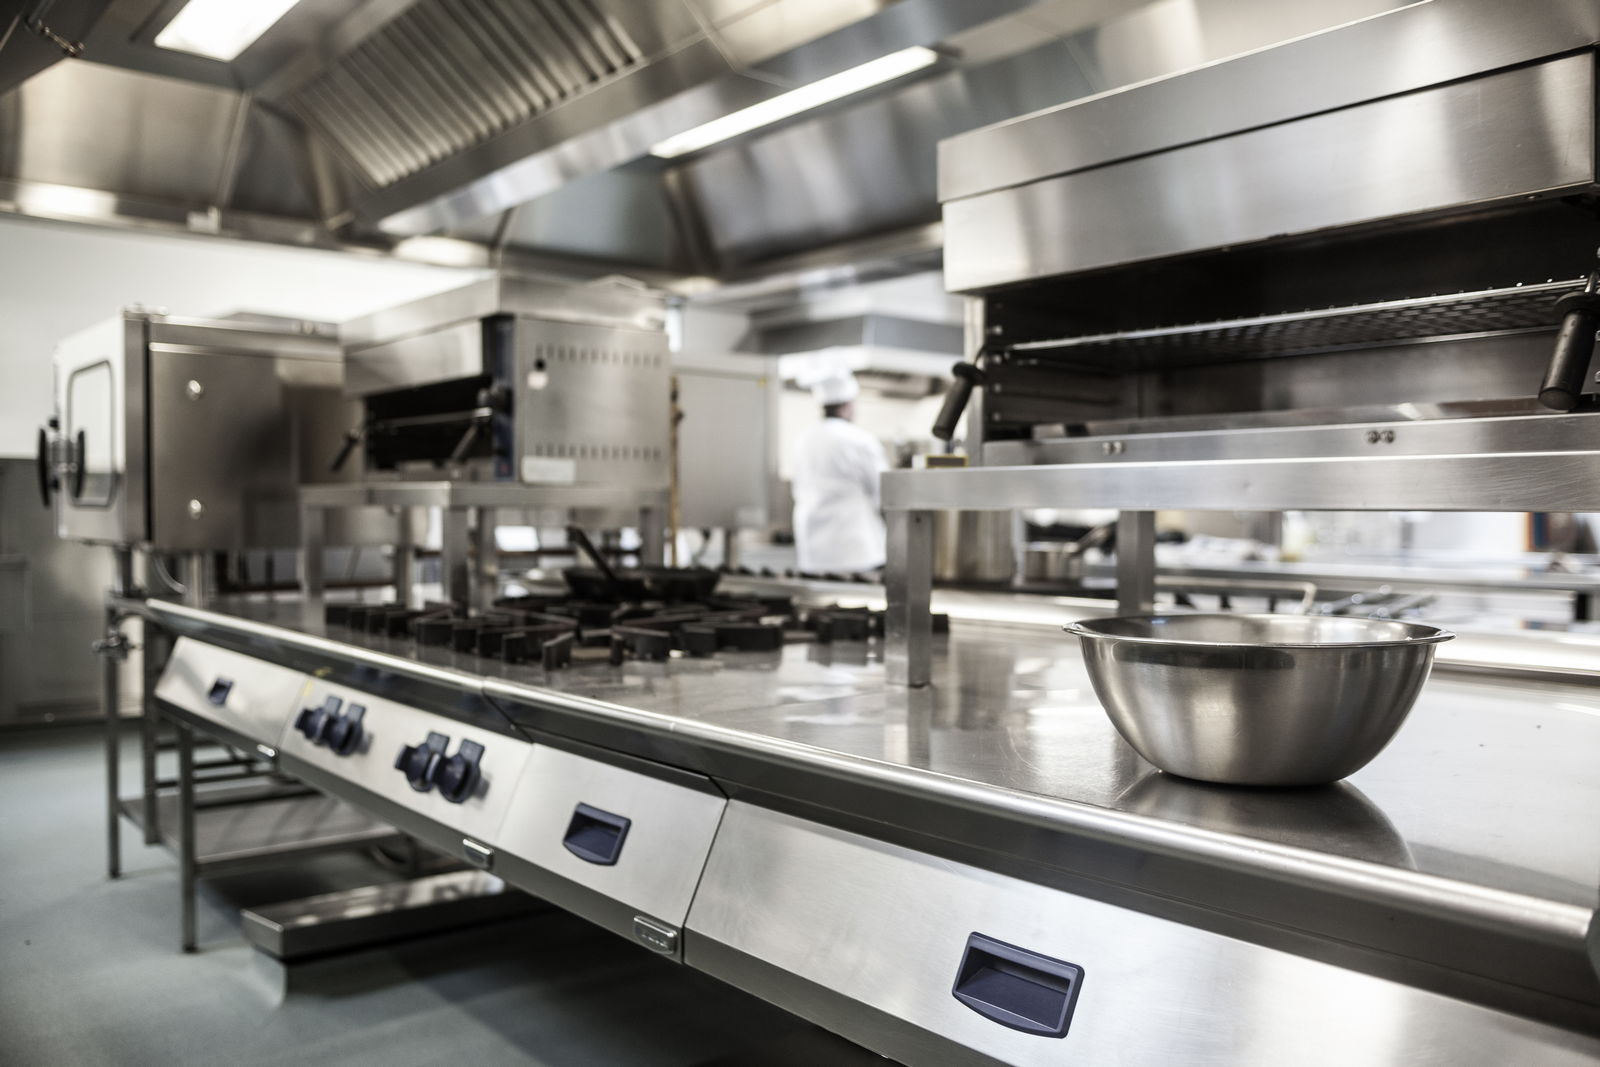 Benefits Of Upgrading Kitchen Equipment In Sydney's Commercial Kitchen